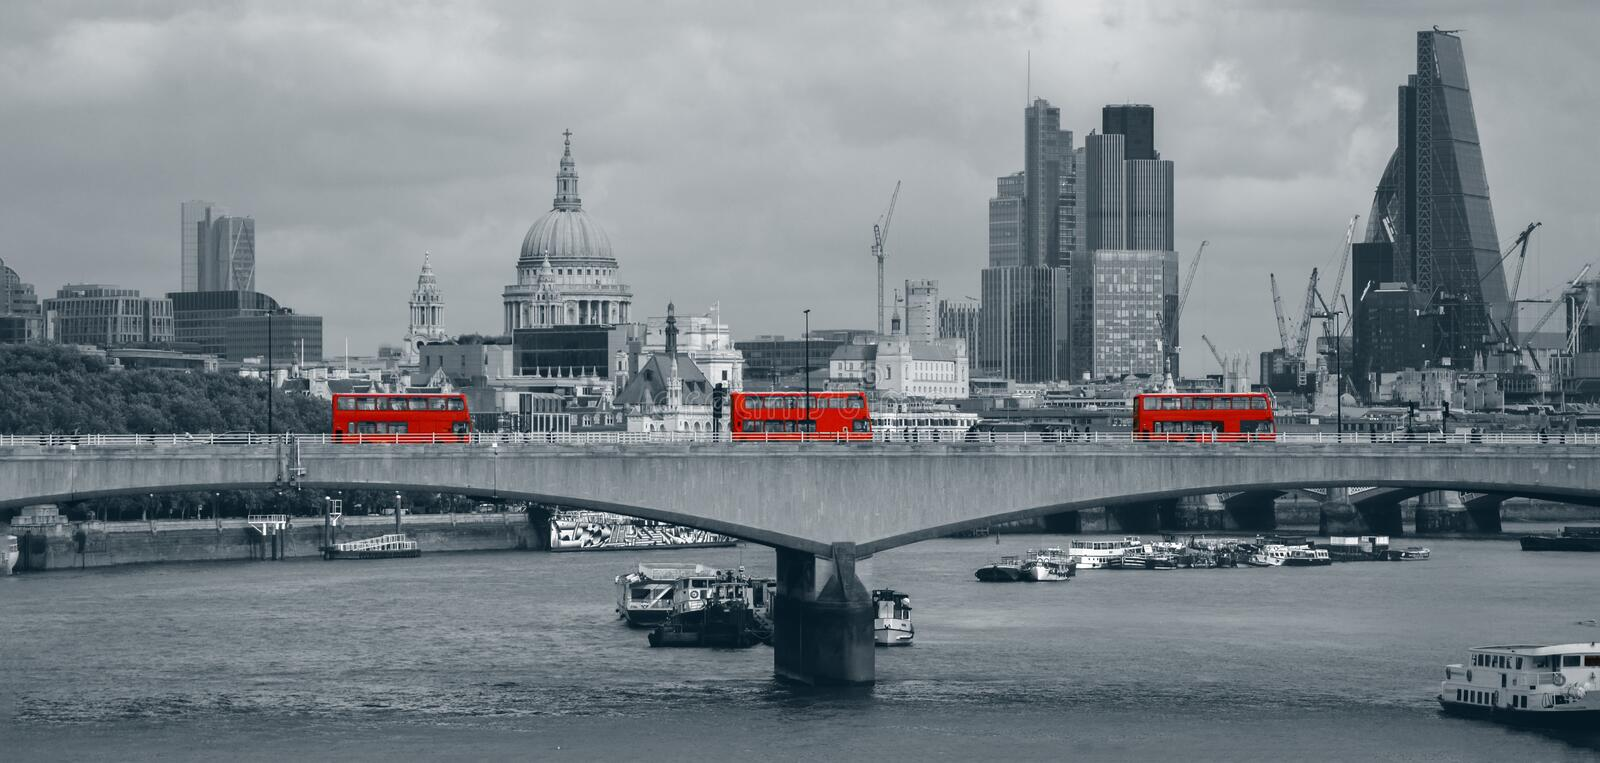 London skyline with red buses. This picture was taken looking across a bridge in London overlooking the Thames River. By pure chance three buses passed over at stock photos